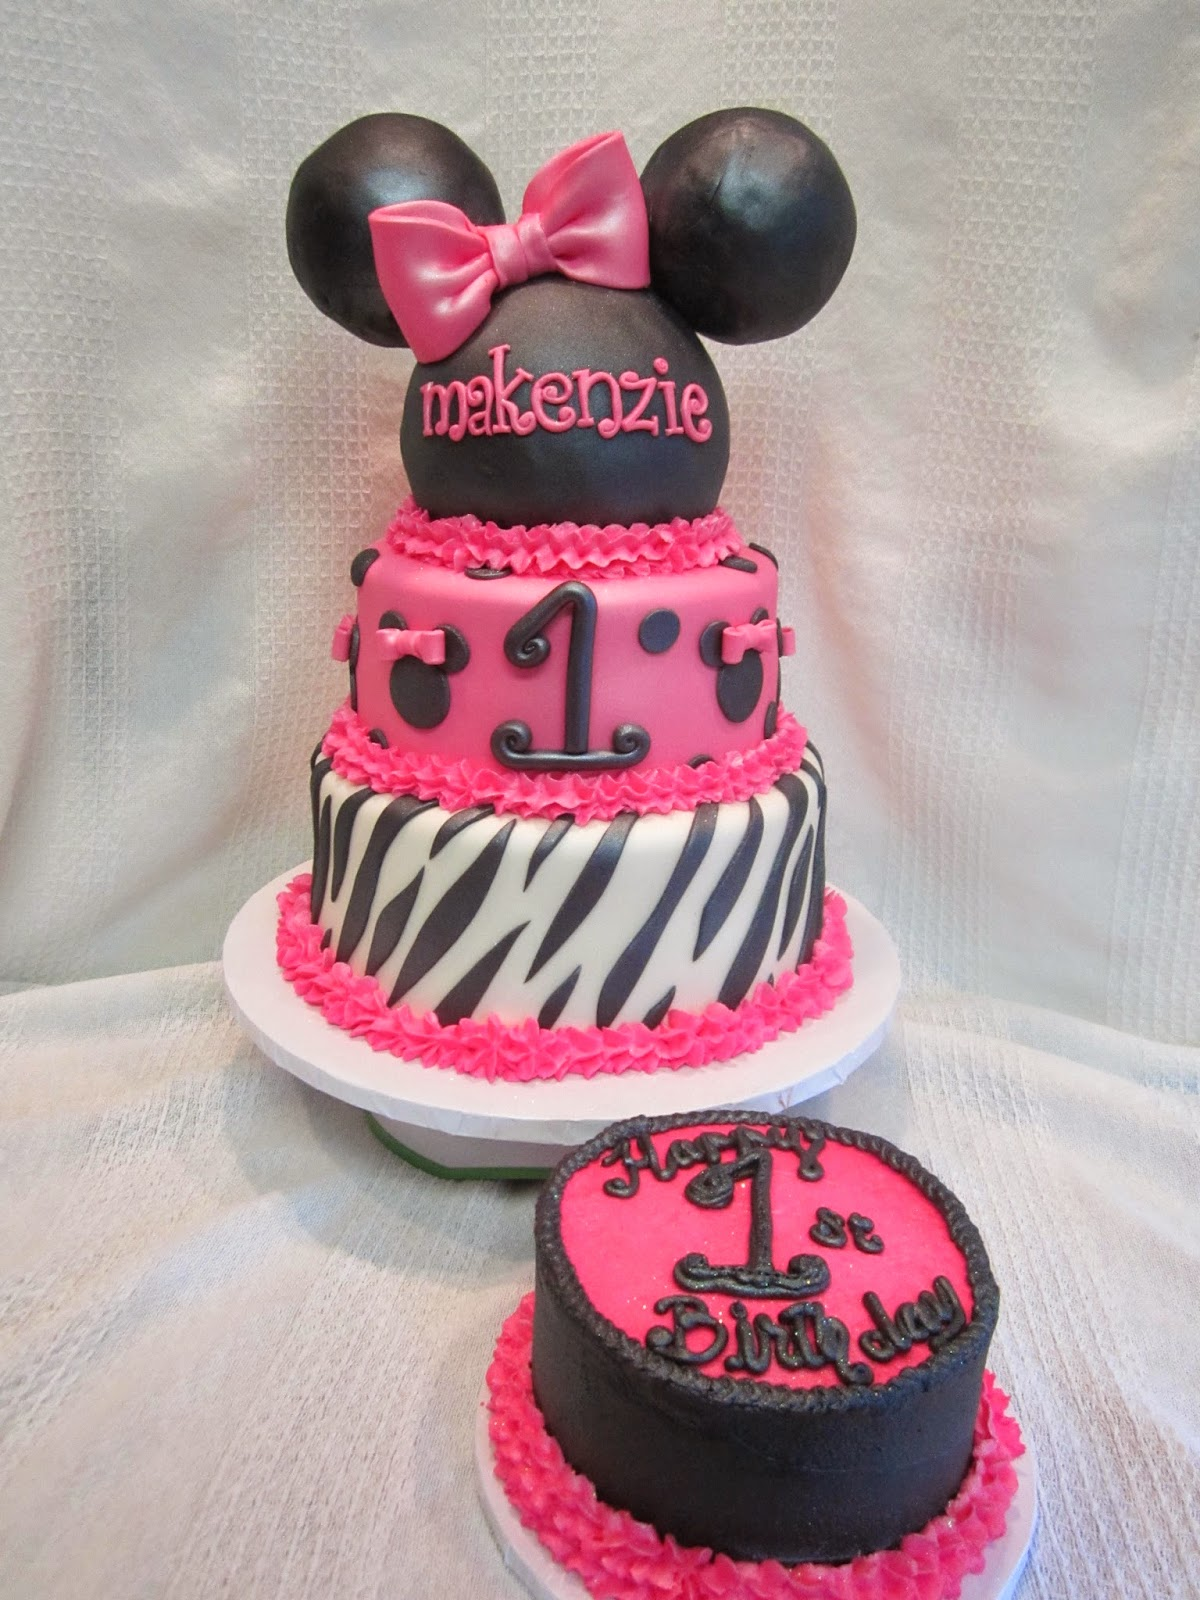 ... & Zebra Minnie Mouse Ears with Smash & First Birthday Lady Bug Cakes